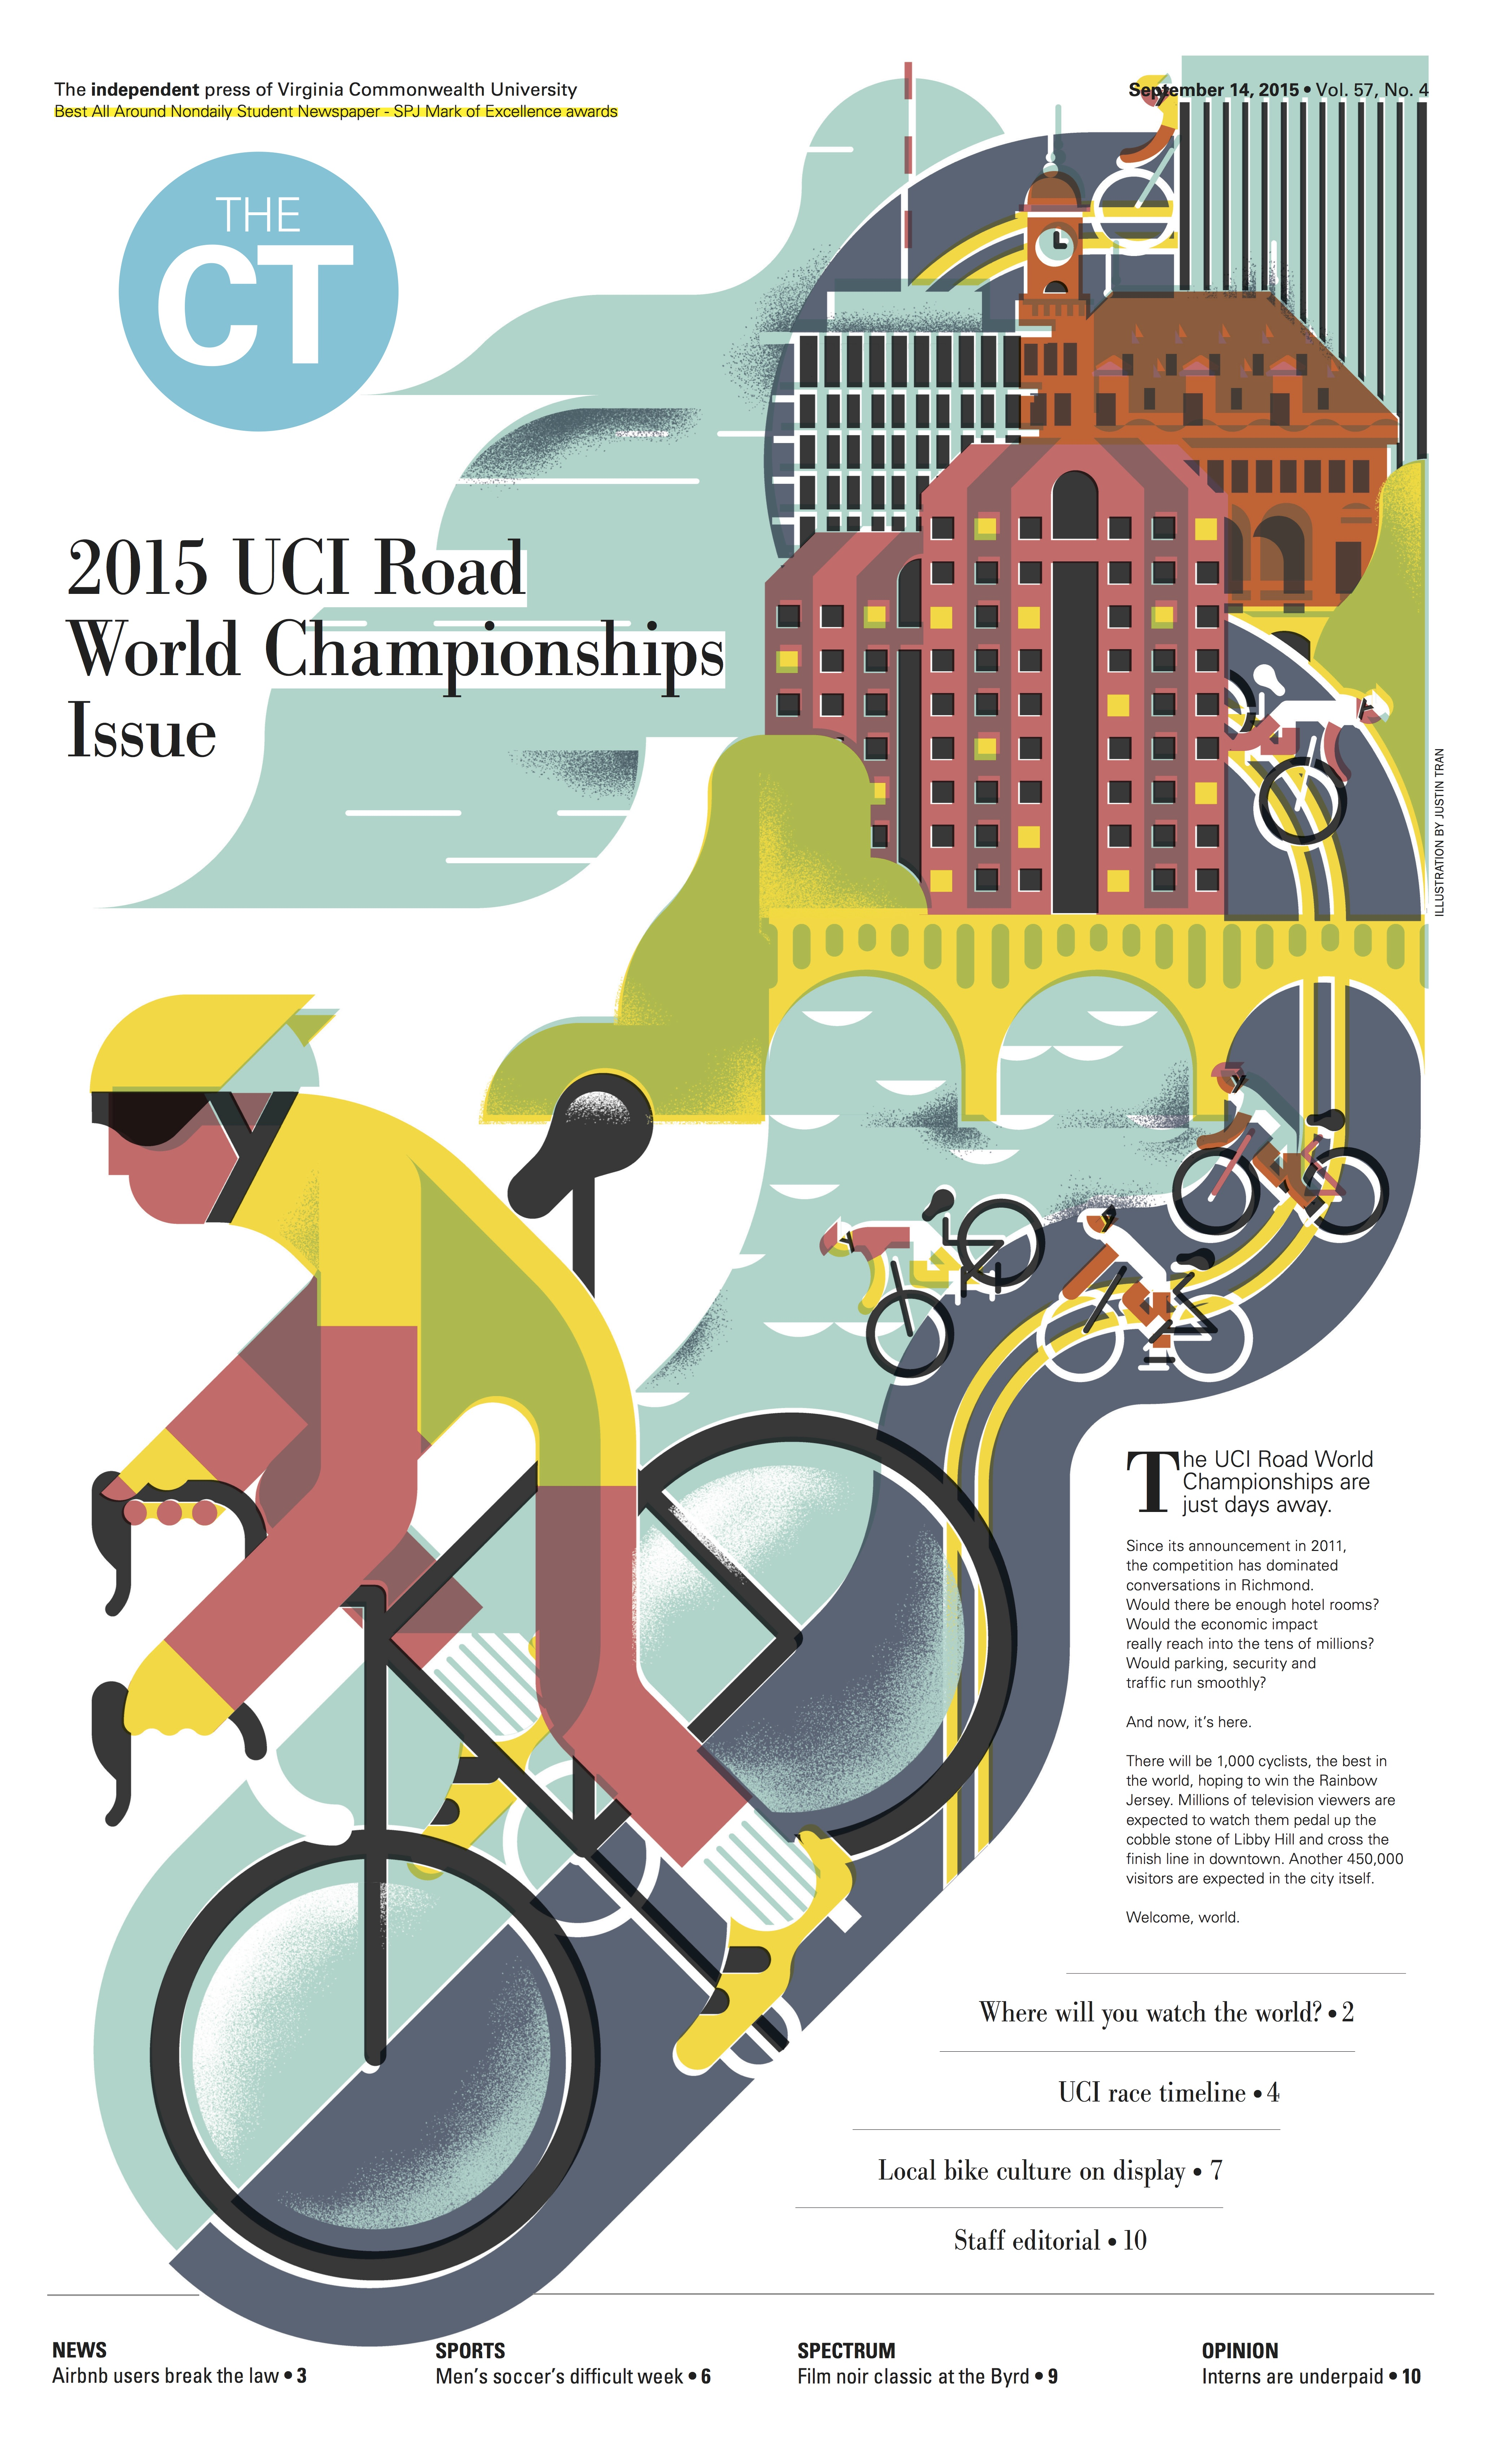 2nd place: Justin Tran (illustration), Shannon Wright and Sarah King (art direction) and Miranda Leung (graphic design), Sept. 14 issue previewing the UCI Road World Championships.